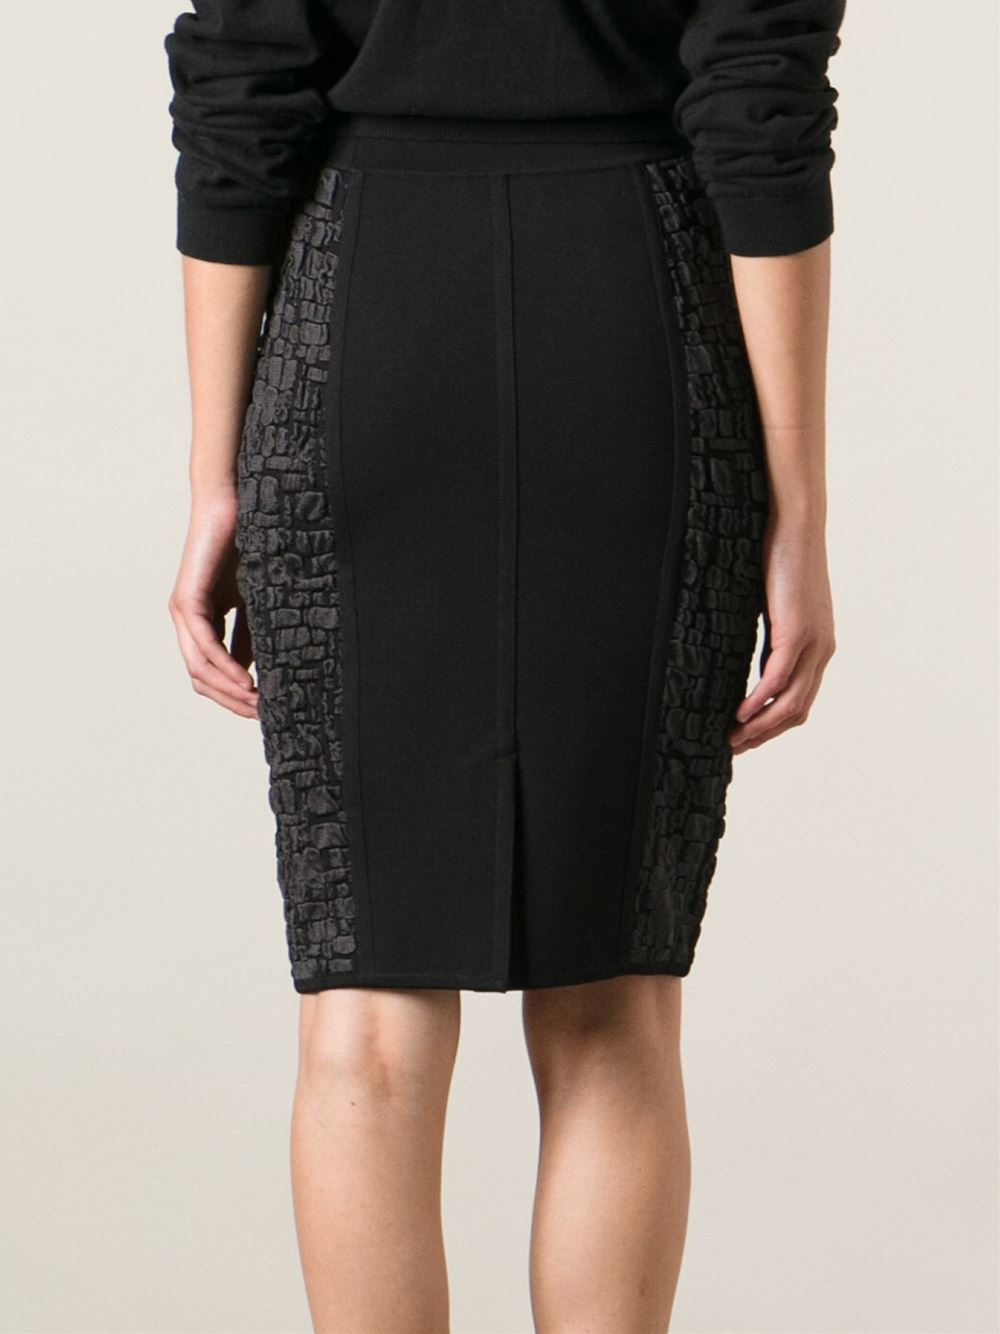 ricci patterned pencil skirt in black lyst